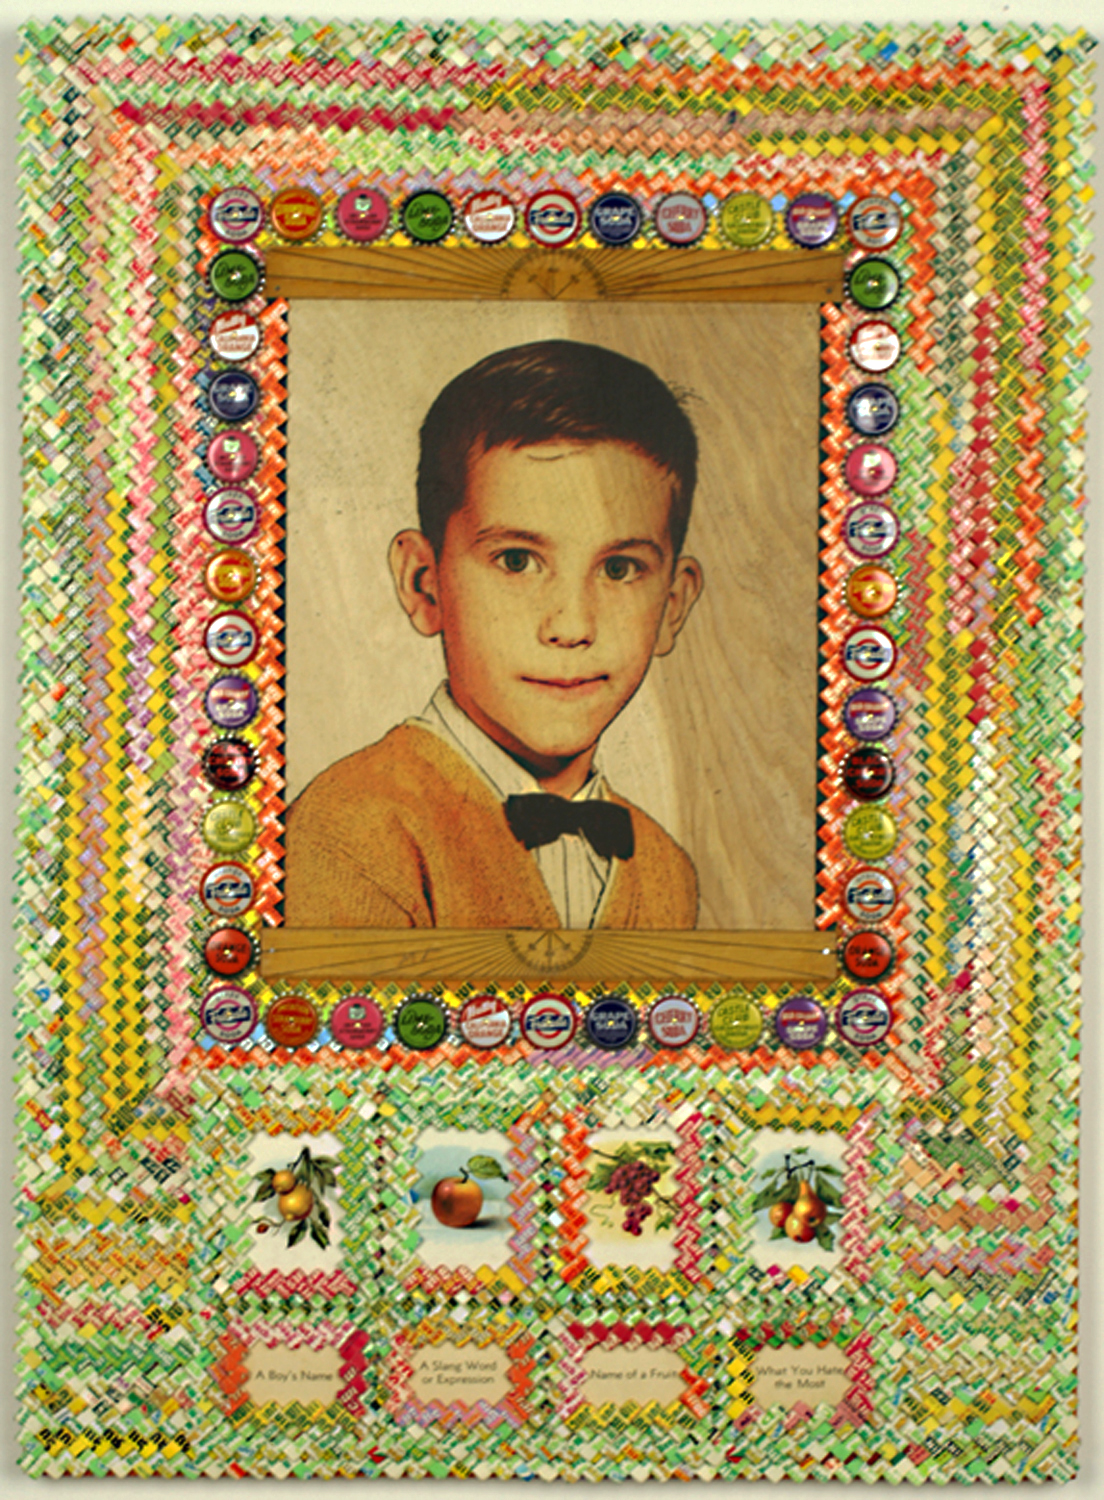 ""\""""Self Portrait with Fruit""""     Digital Image transfer on birch     30""""h x 22""""w x 1""""d     2012     NFS Digital Image transfer on birch plywood with vintage paper gum wrapper chain, mid 20th century metal pop bottle caps in fruit flavors, printed  cards from vintage children's games, vintage wood  garde school rulers, milk paint.""1104|1500|?|en|2|d4551927d01f51f1eec3f05e55c6b2a4|False|UNLIKELY|0.2924899160861969